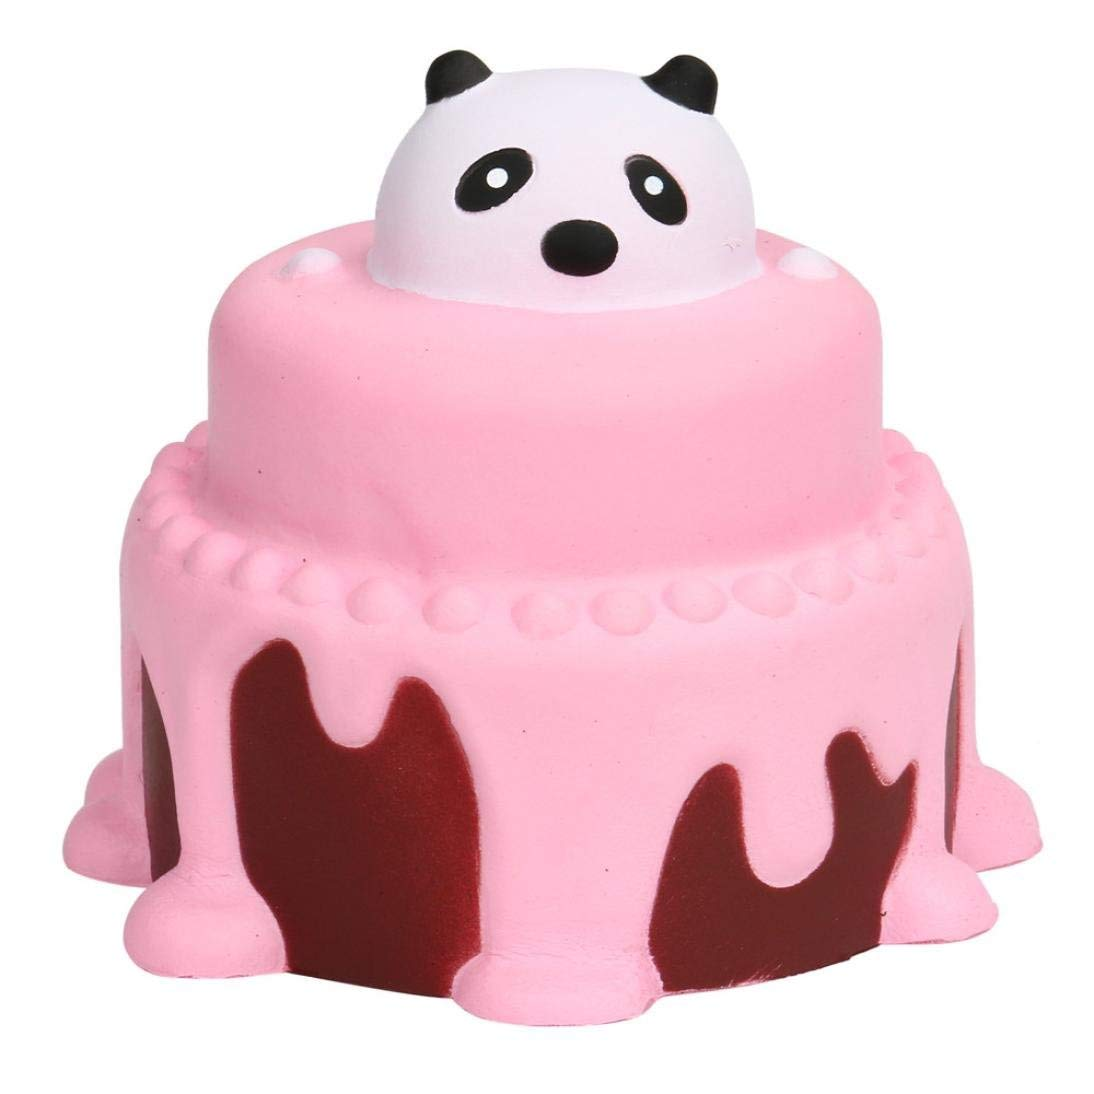 Malbaba 10CM Cute Panda Cake Scented Jumbo Slow Rising Squeeze Stress Relief Kawaii Squishy Decompression Toys